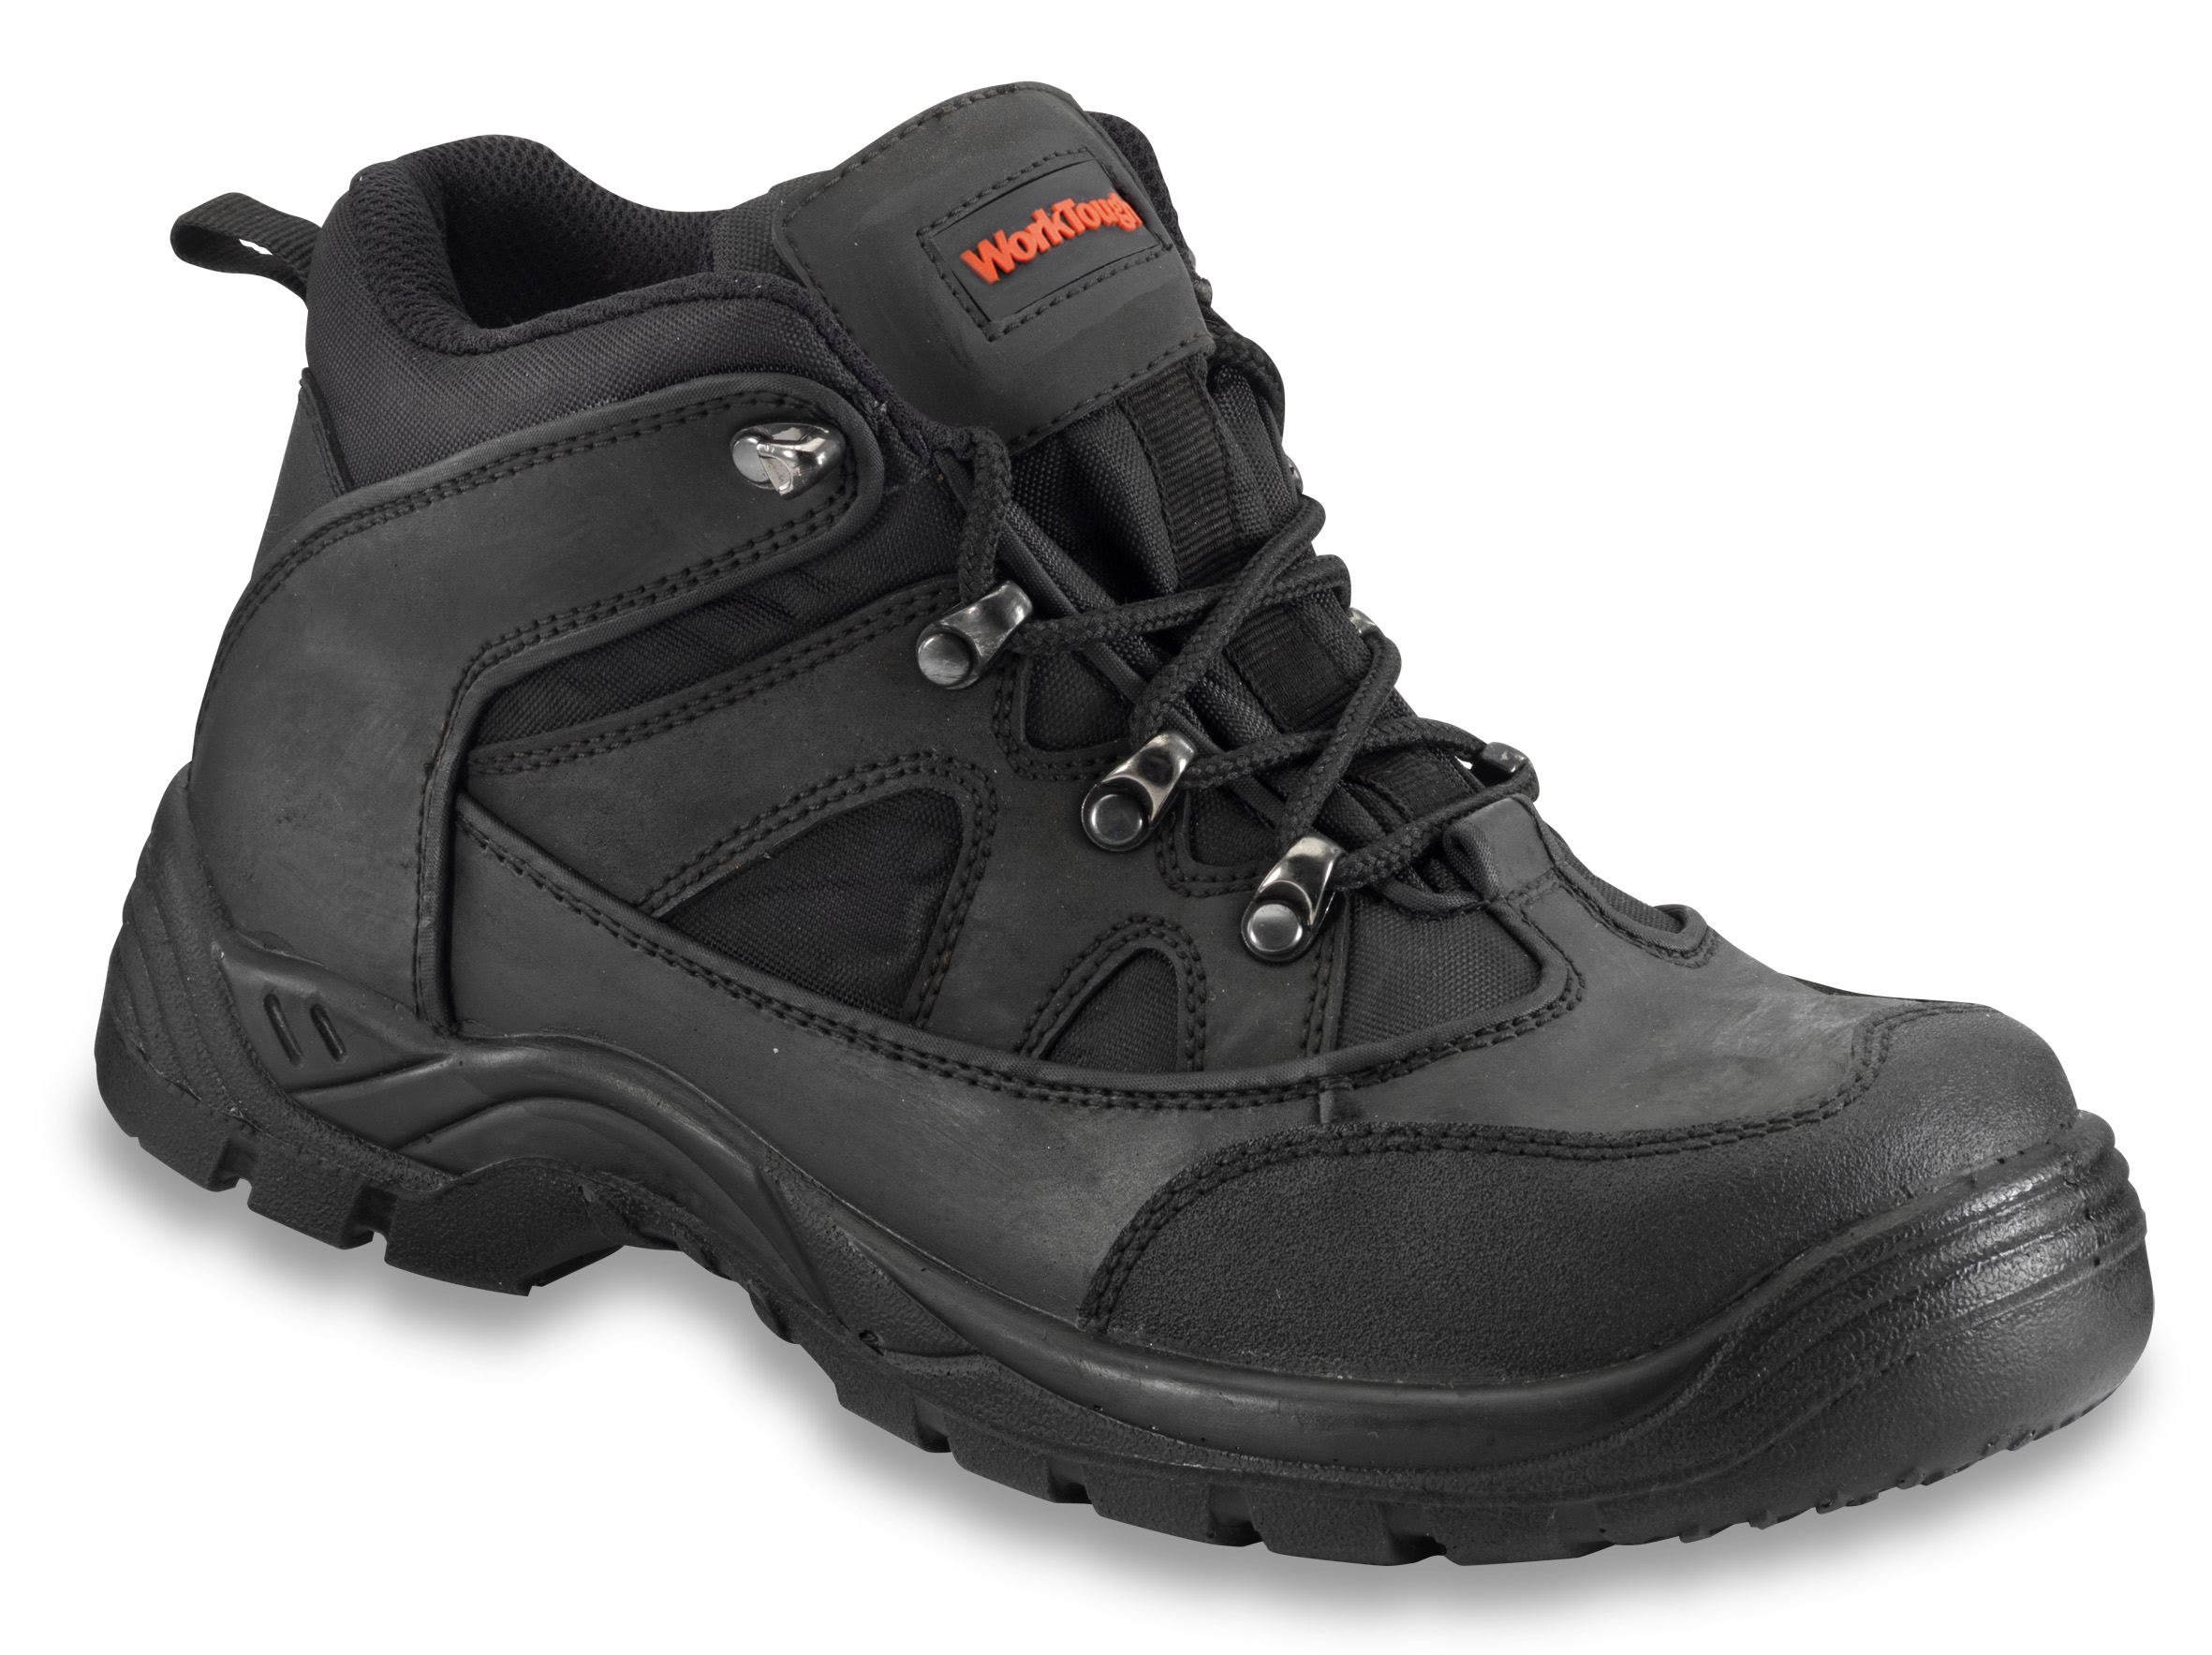 73SM WORKTOUGH 73SM MID CUT BLACK B